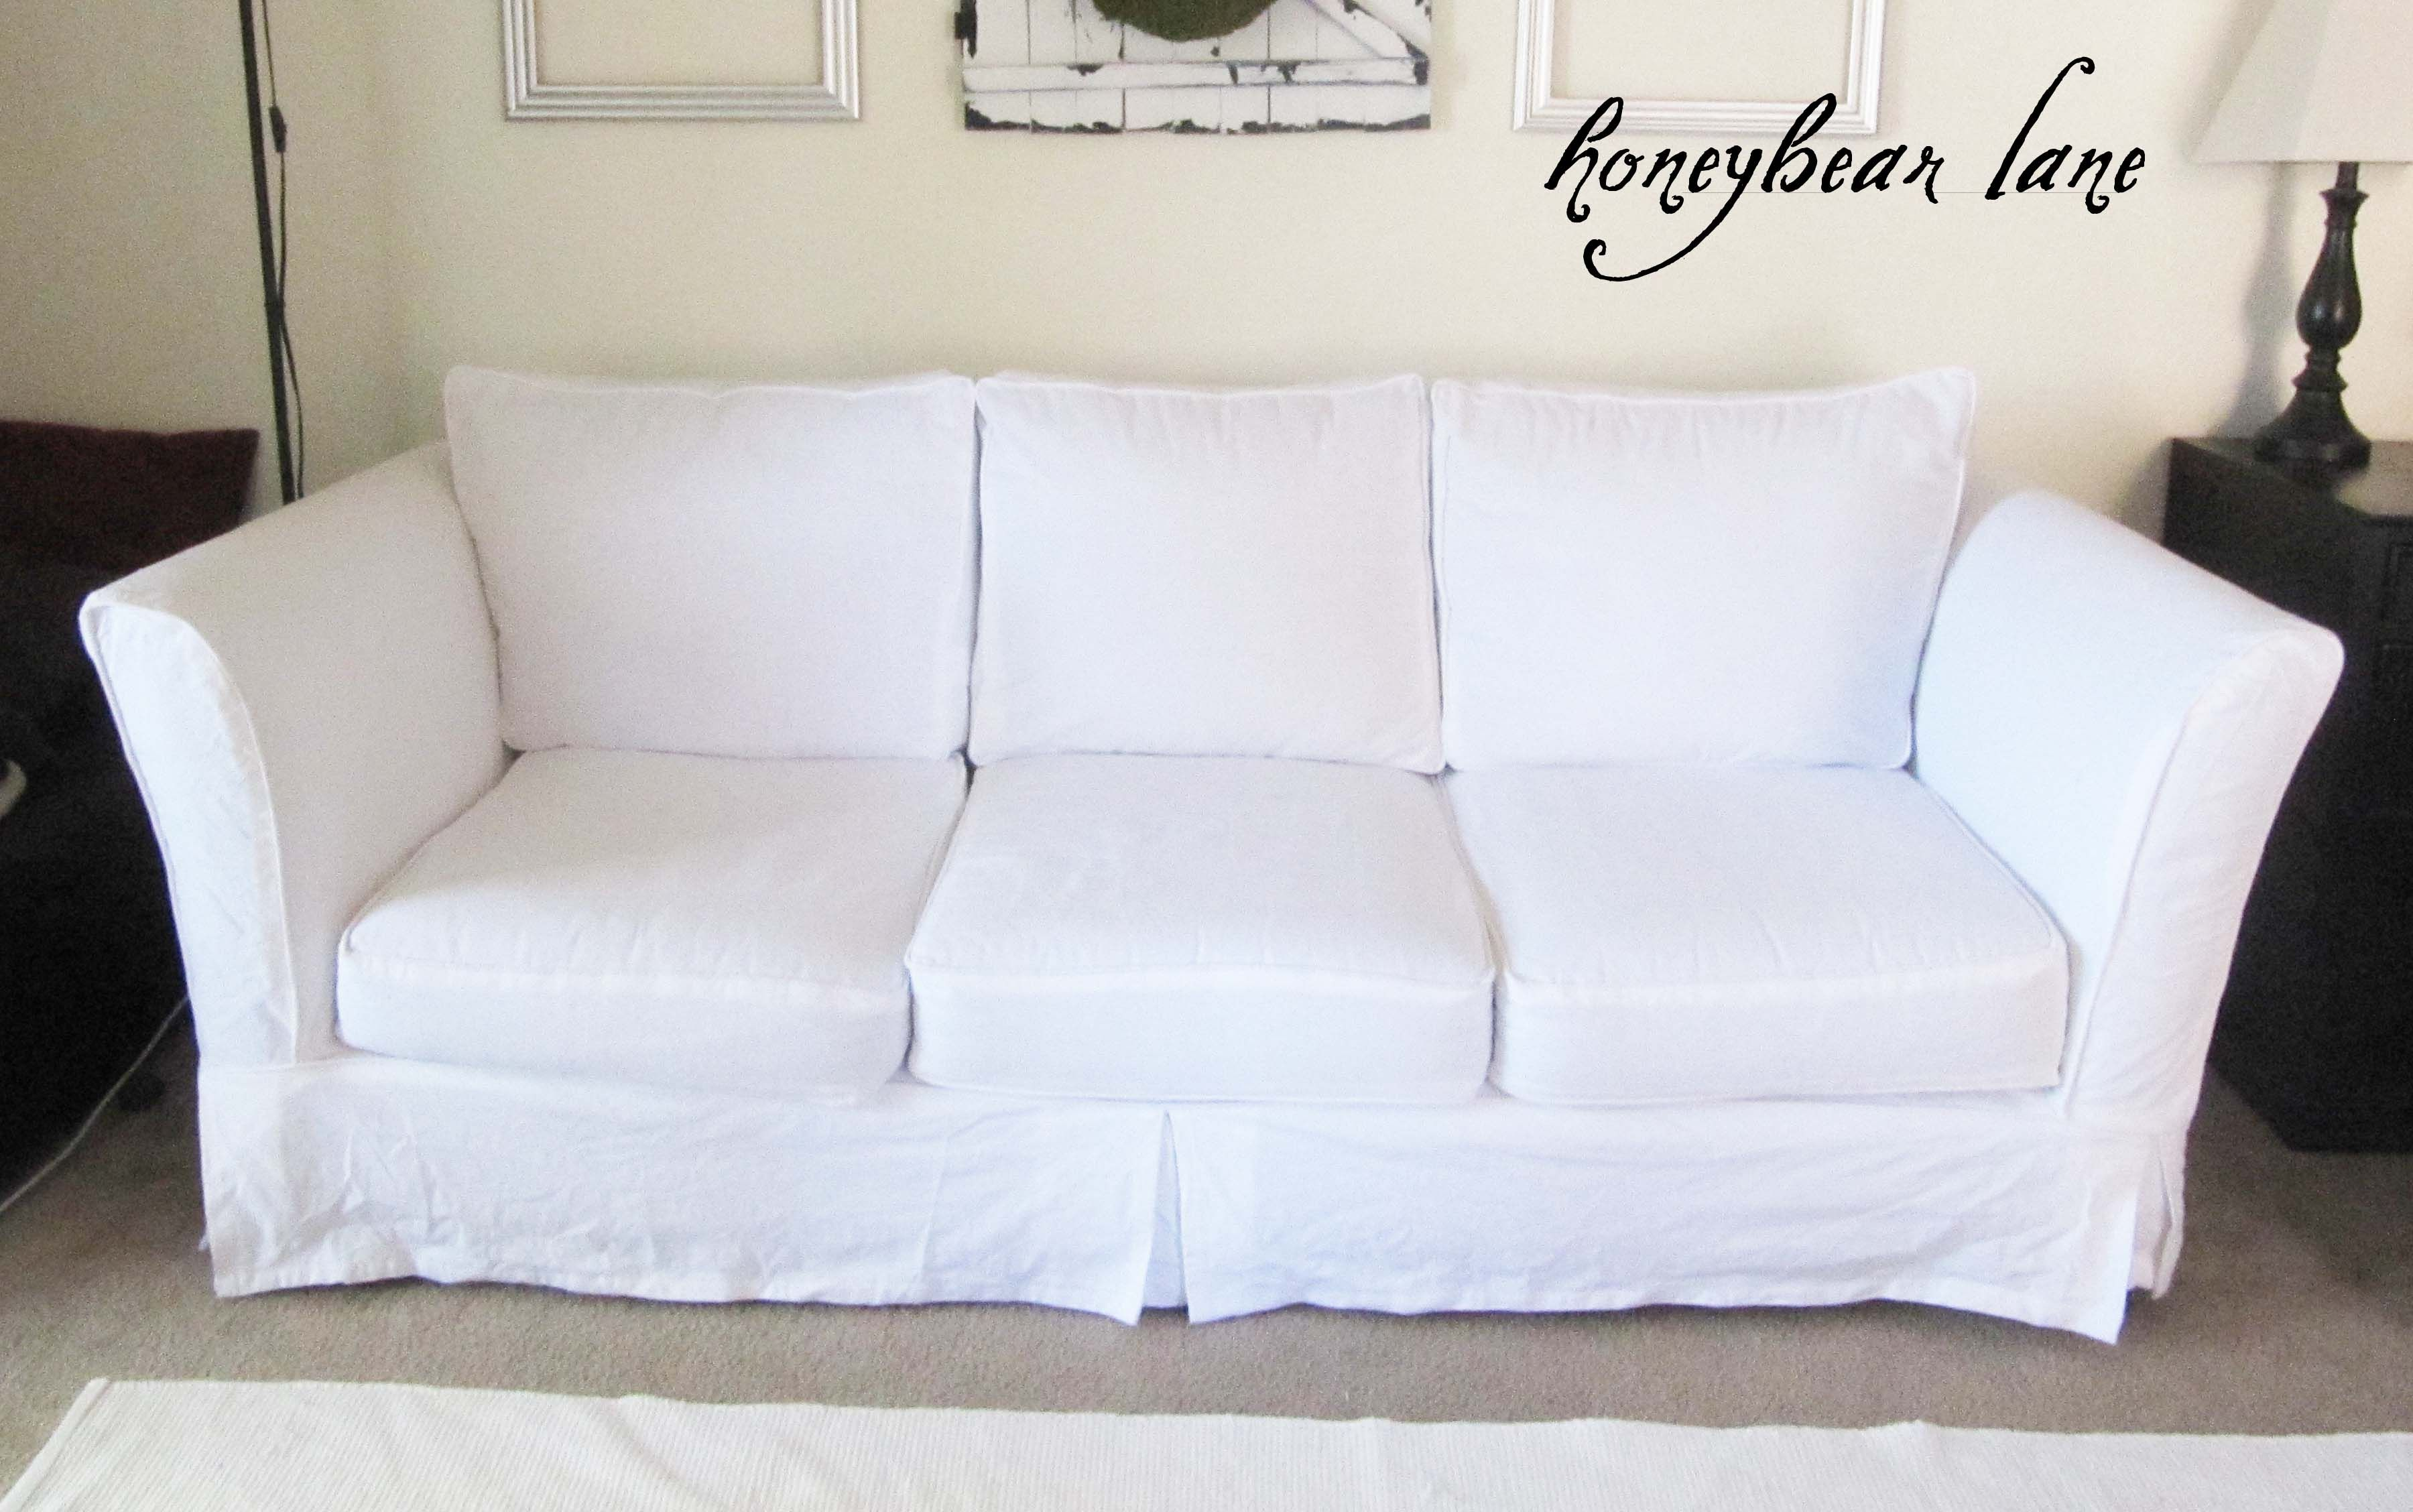 DIY Couch Slipcover Tutorial With Good Instructions And Plenty Of Photos. Idea